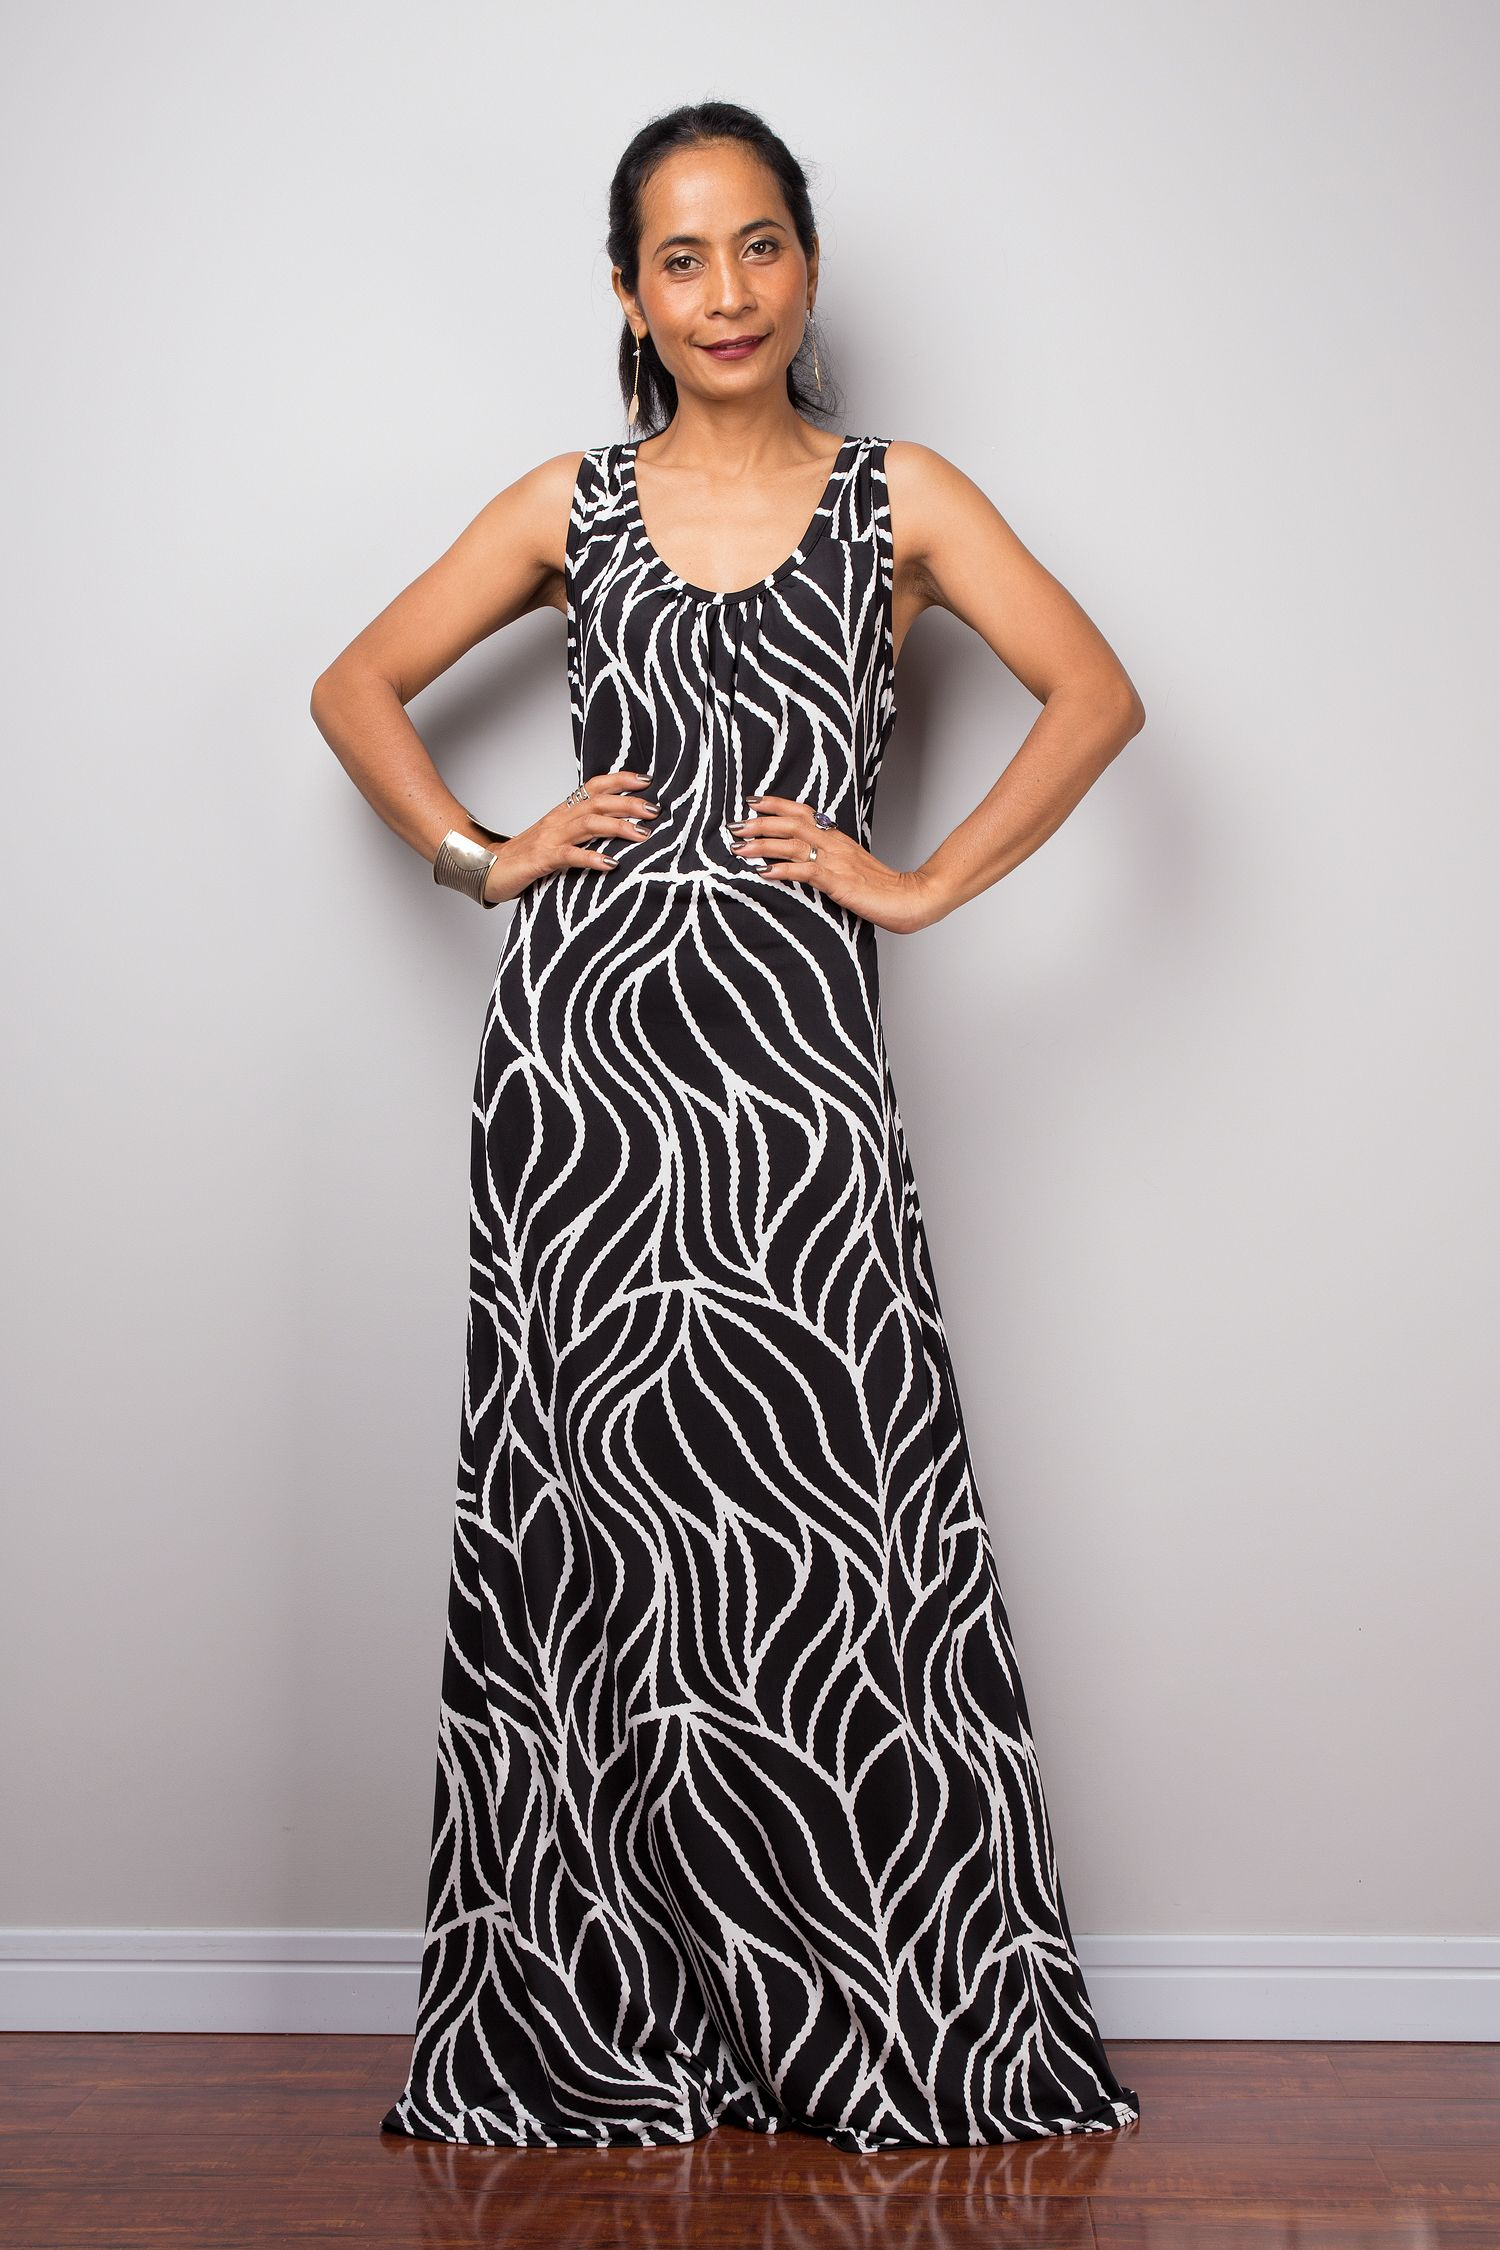 Black And White Sleeveless Tank Top Maxi Dress Loose Fit Evening